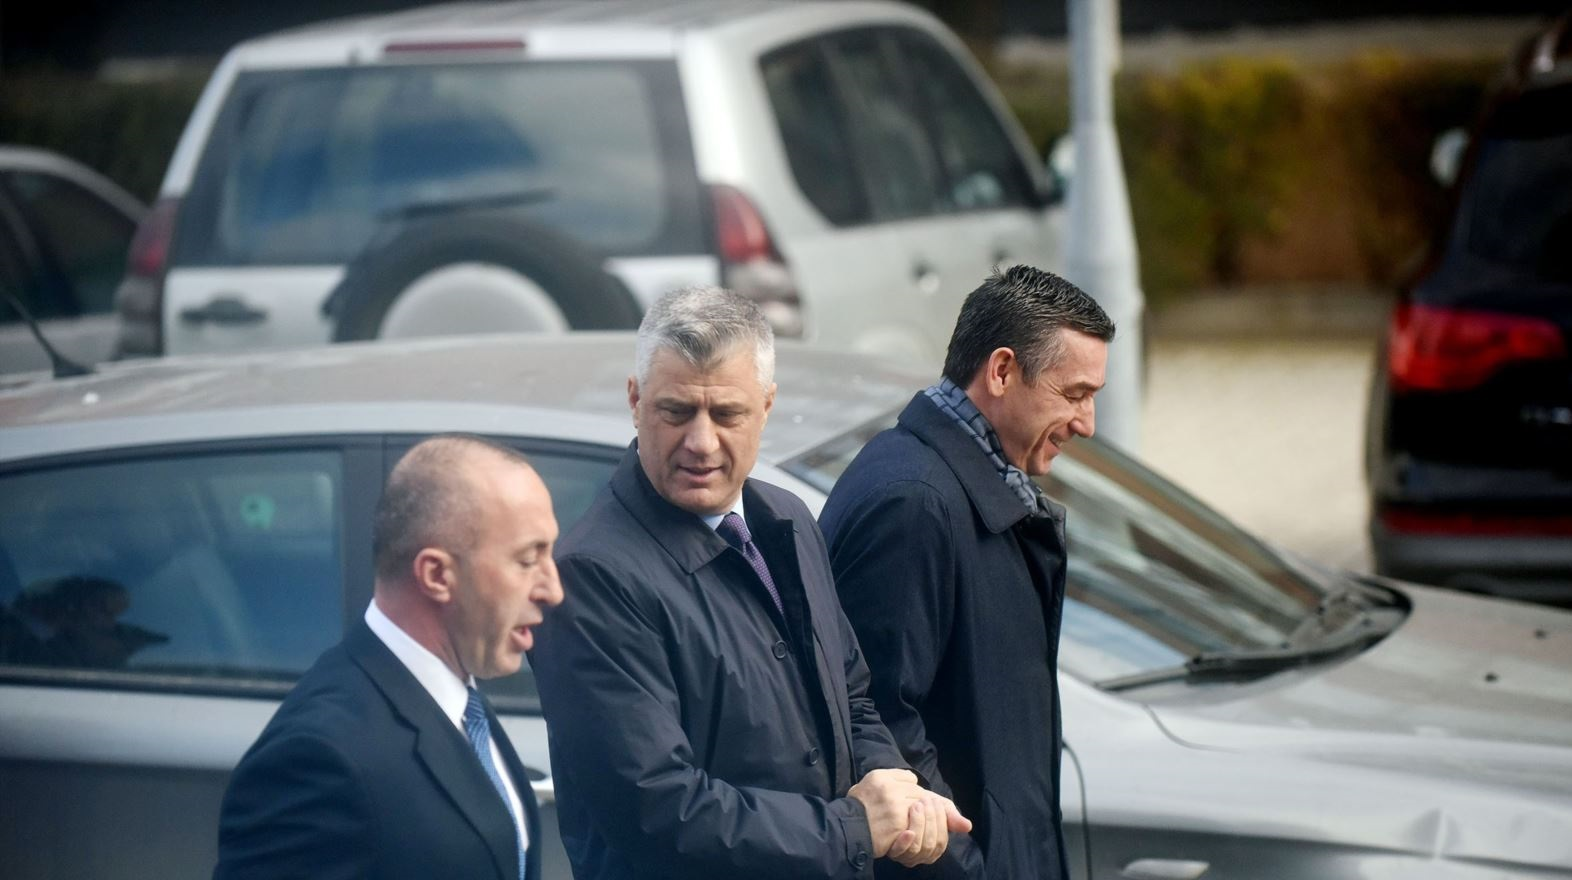 Quint countries welcome the withdrawal of political leaders in Kosovo from the repeal of the Special Court